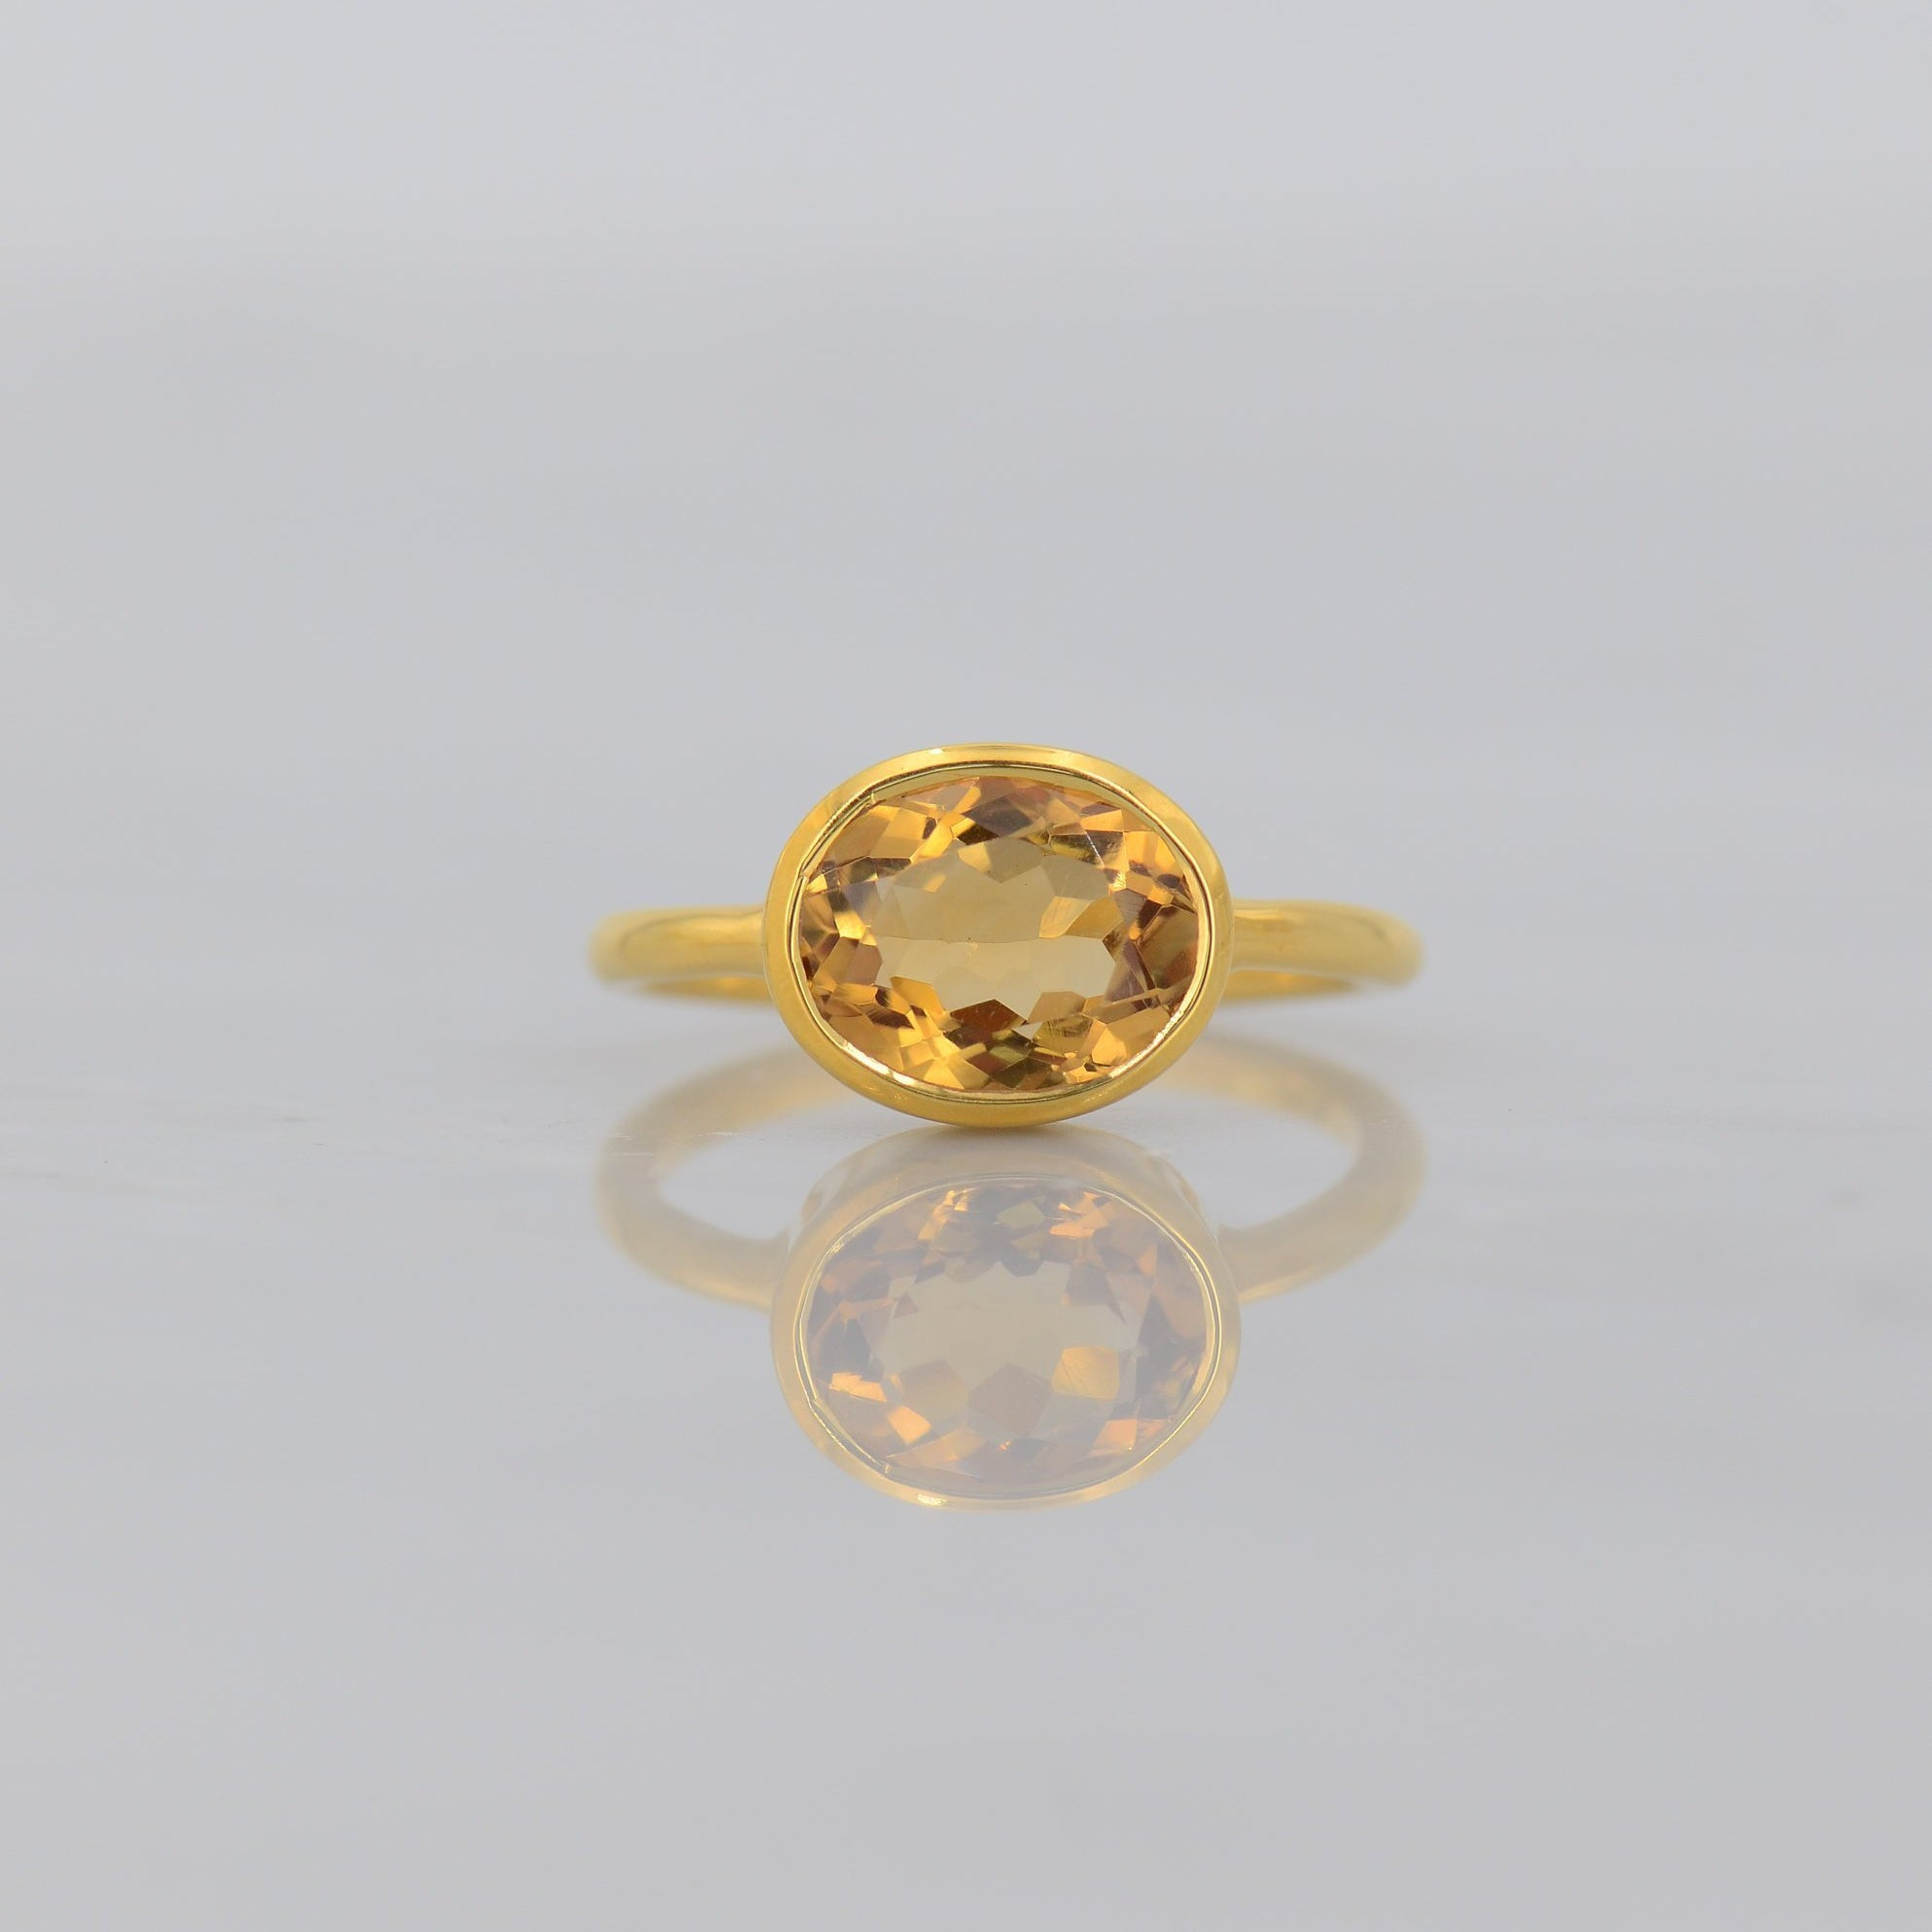 Fire Citrine ring, November birthstone ring, Stackable ring, Yellow Gemstone ring, Birthday gift, Simple Gemstone ring, Everyday ring